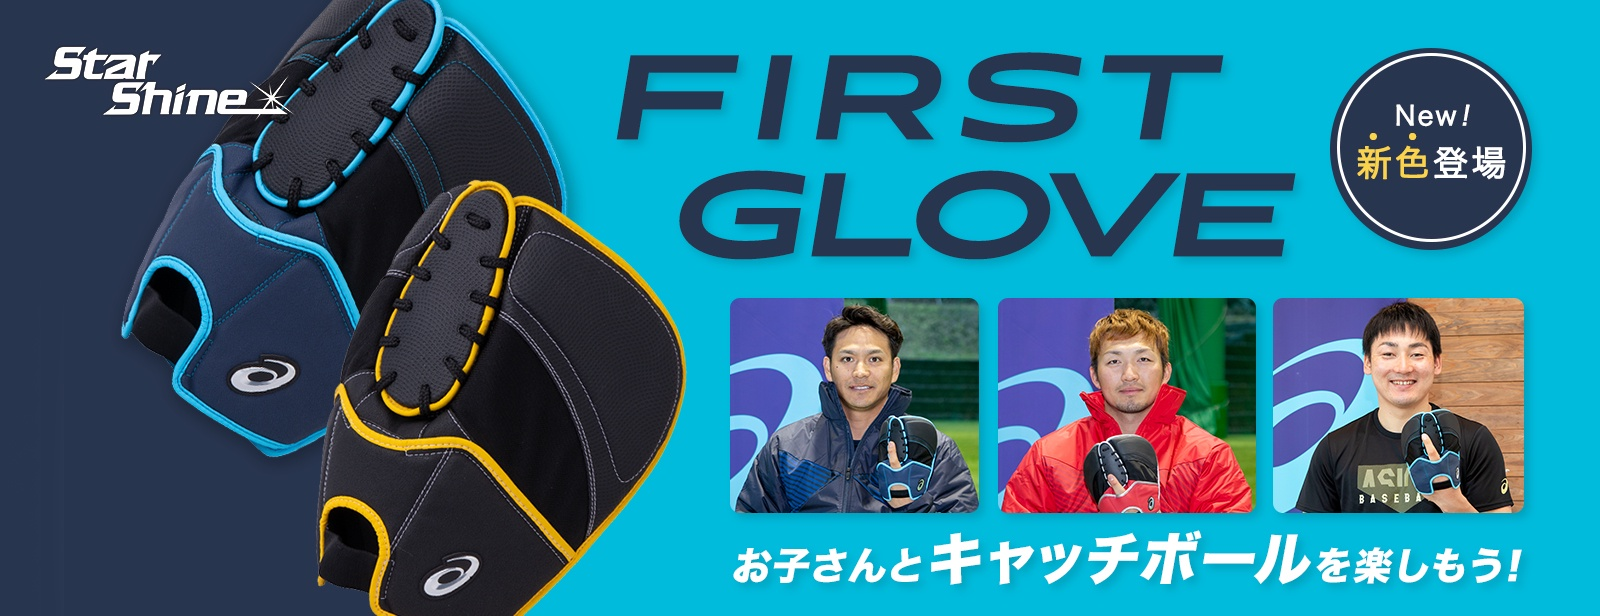 baseball first glove_hero_baneer_pc_20aw_okawa